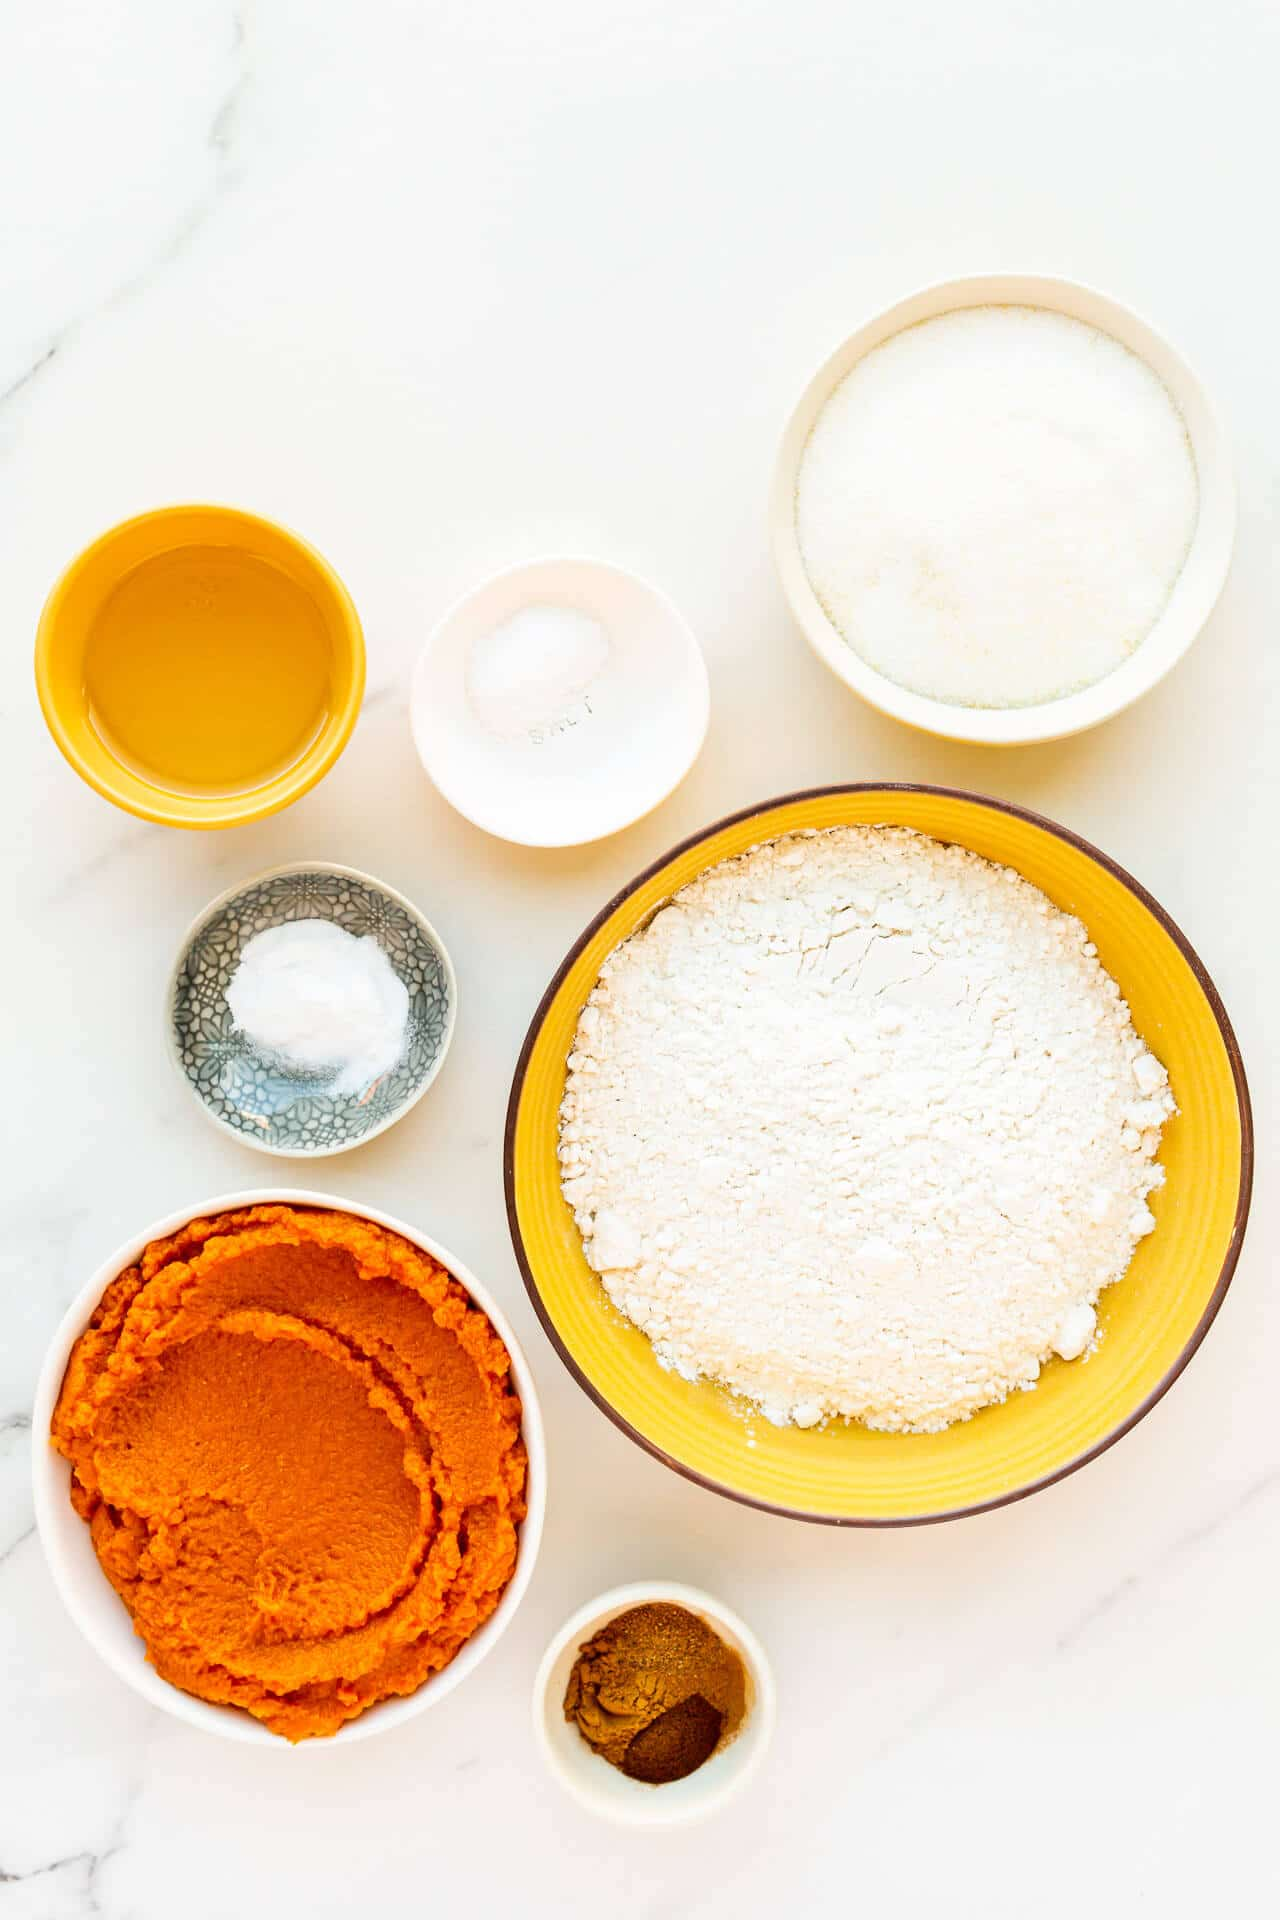 Ingredients to make eggless pumpkin bread include oil, salt, baking soda, sugar, flour, canned pumpkin, and spices